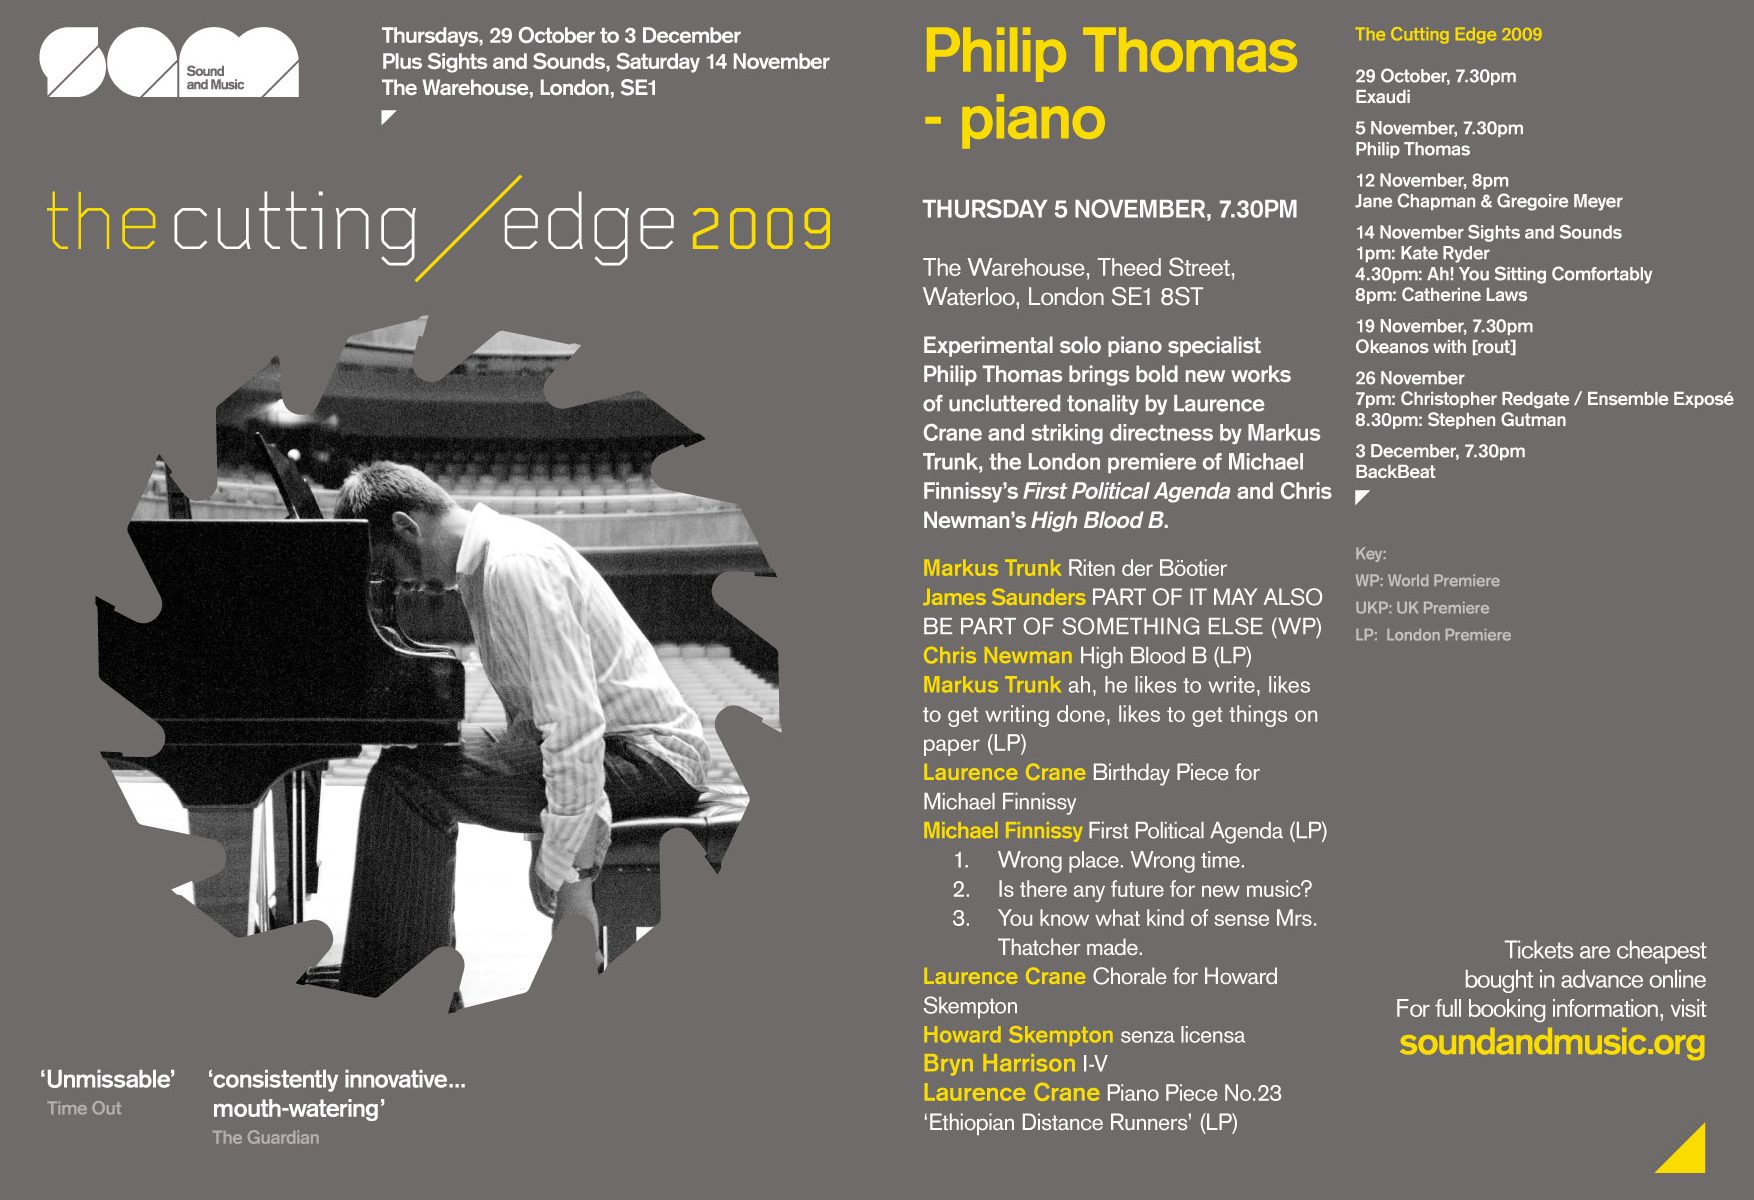 The Cutting Edge - philip thomas